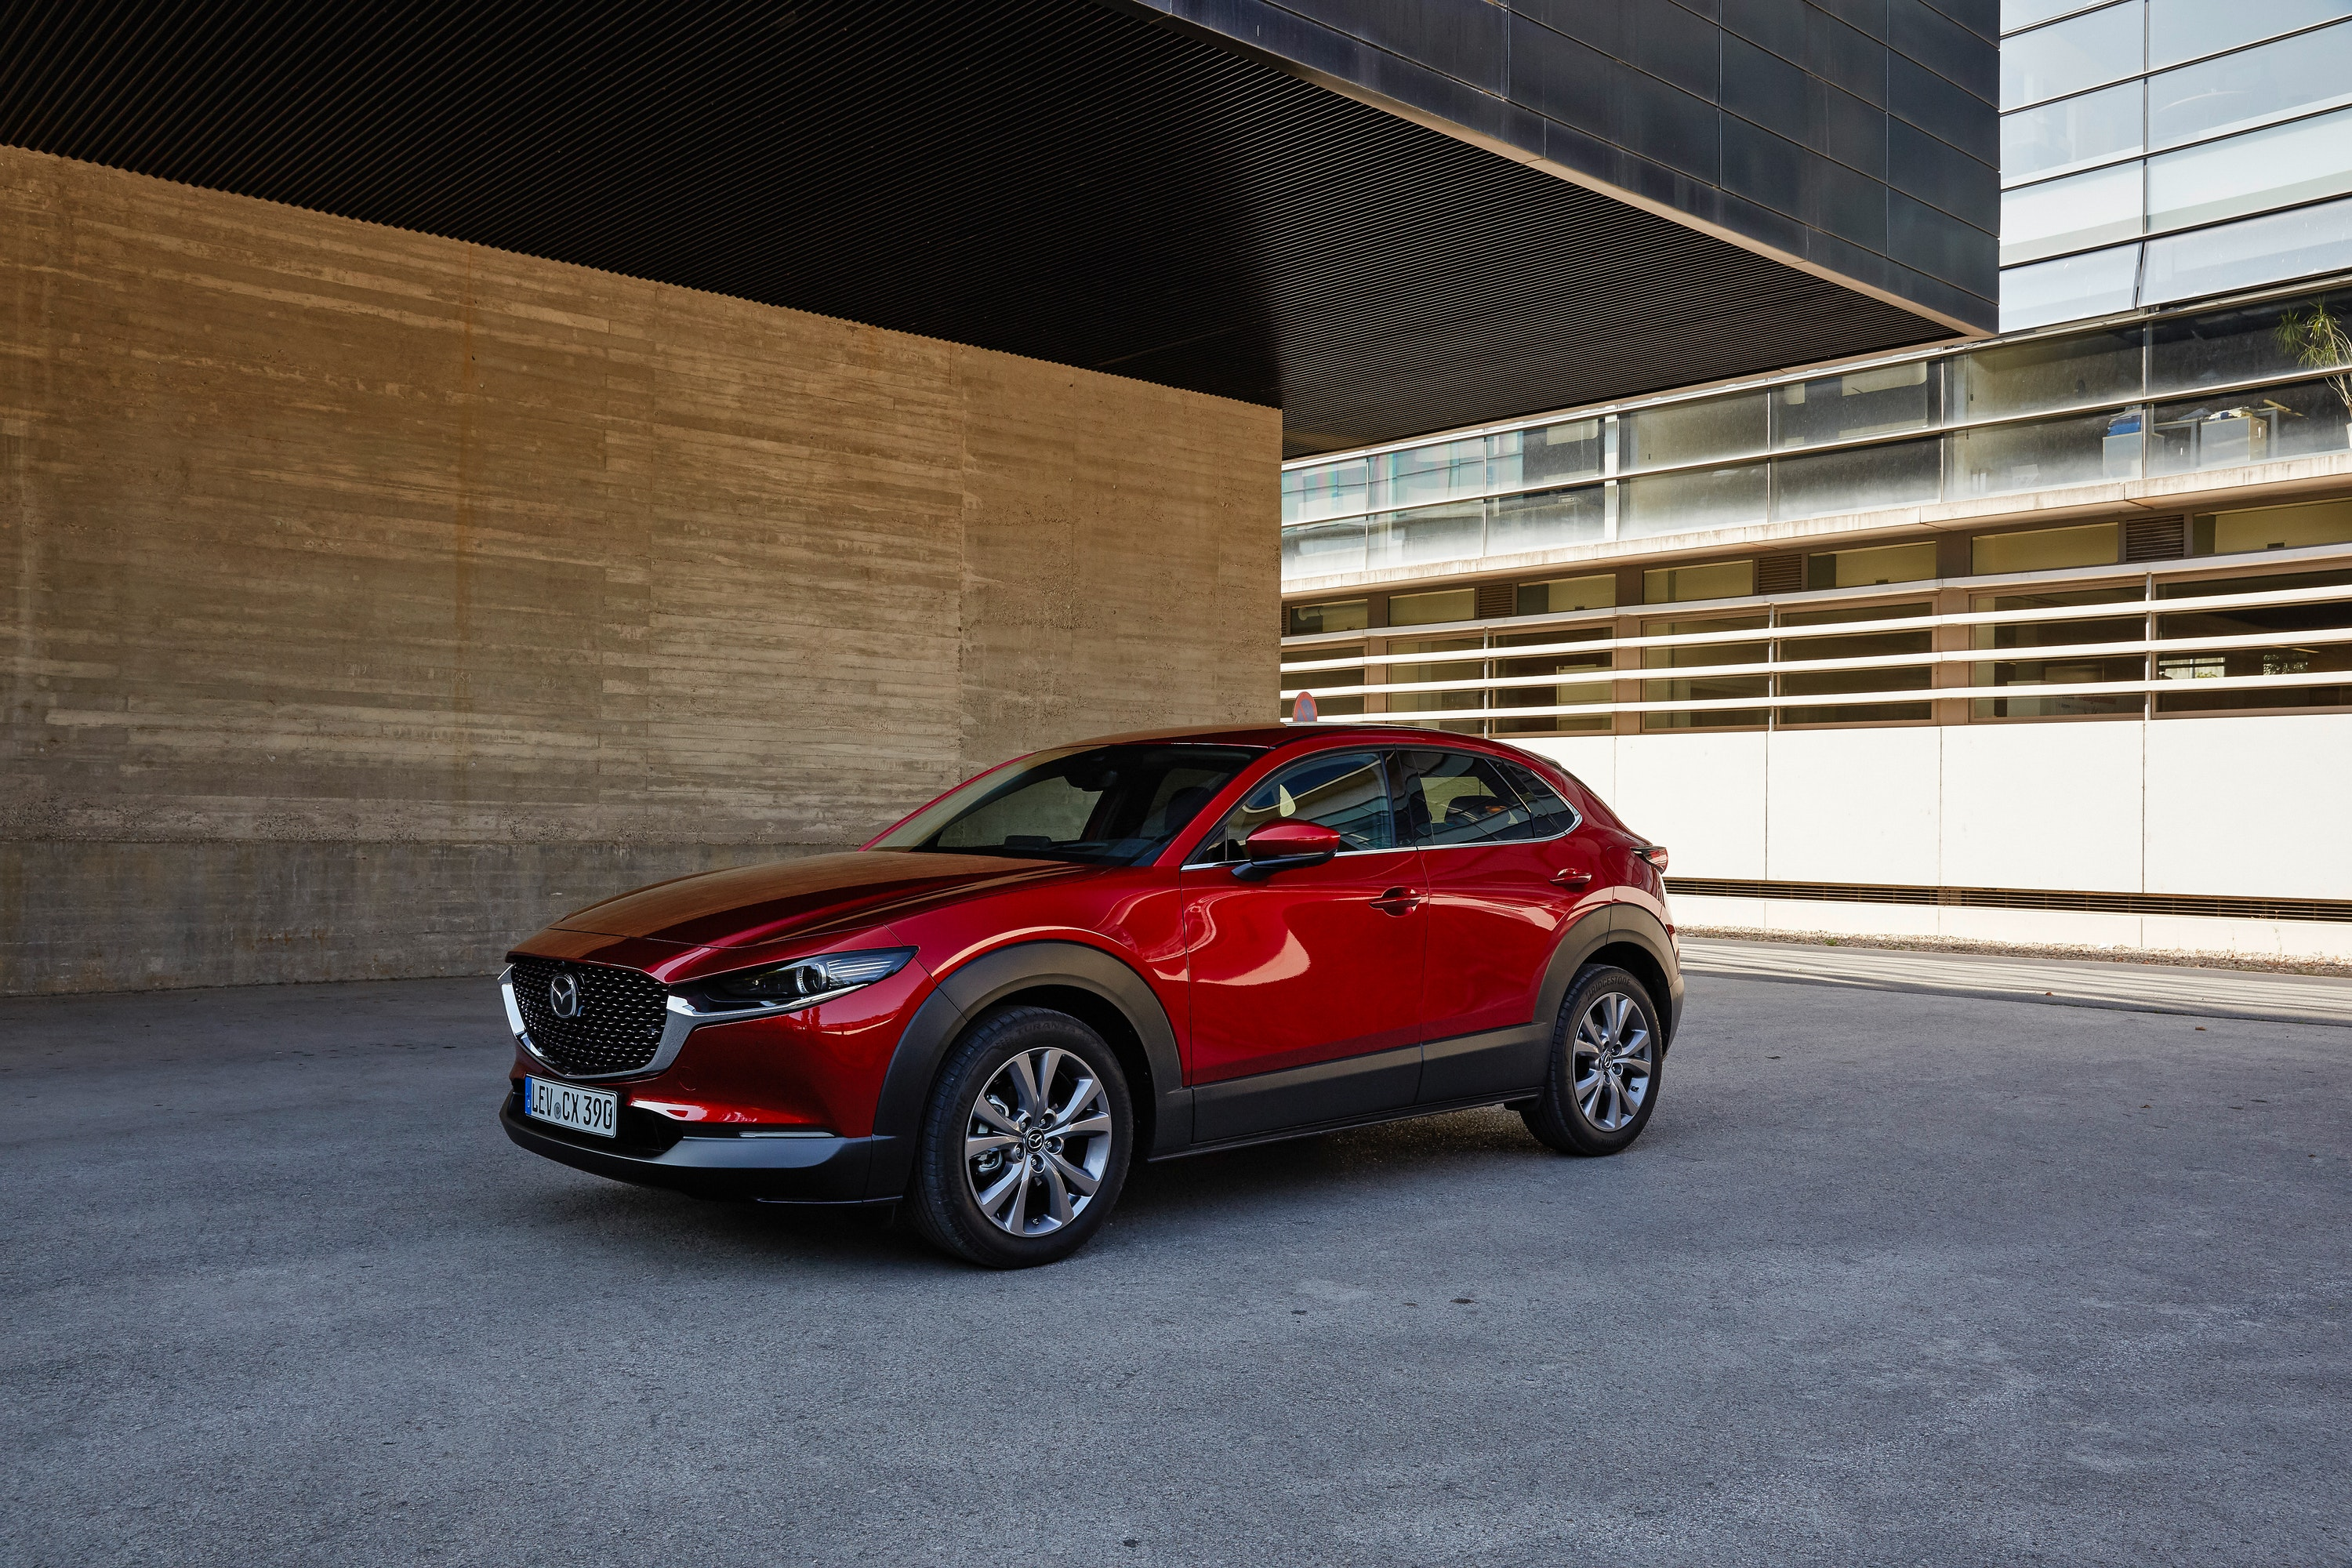 Side view of red Mazda CX-30